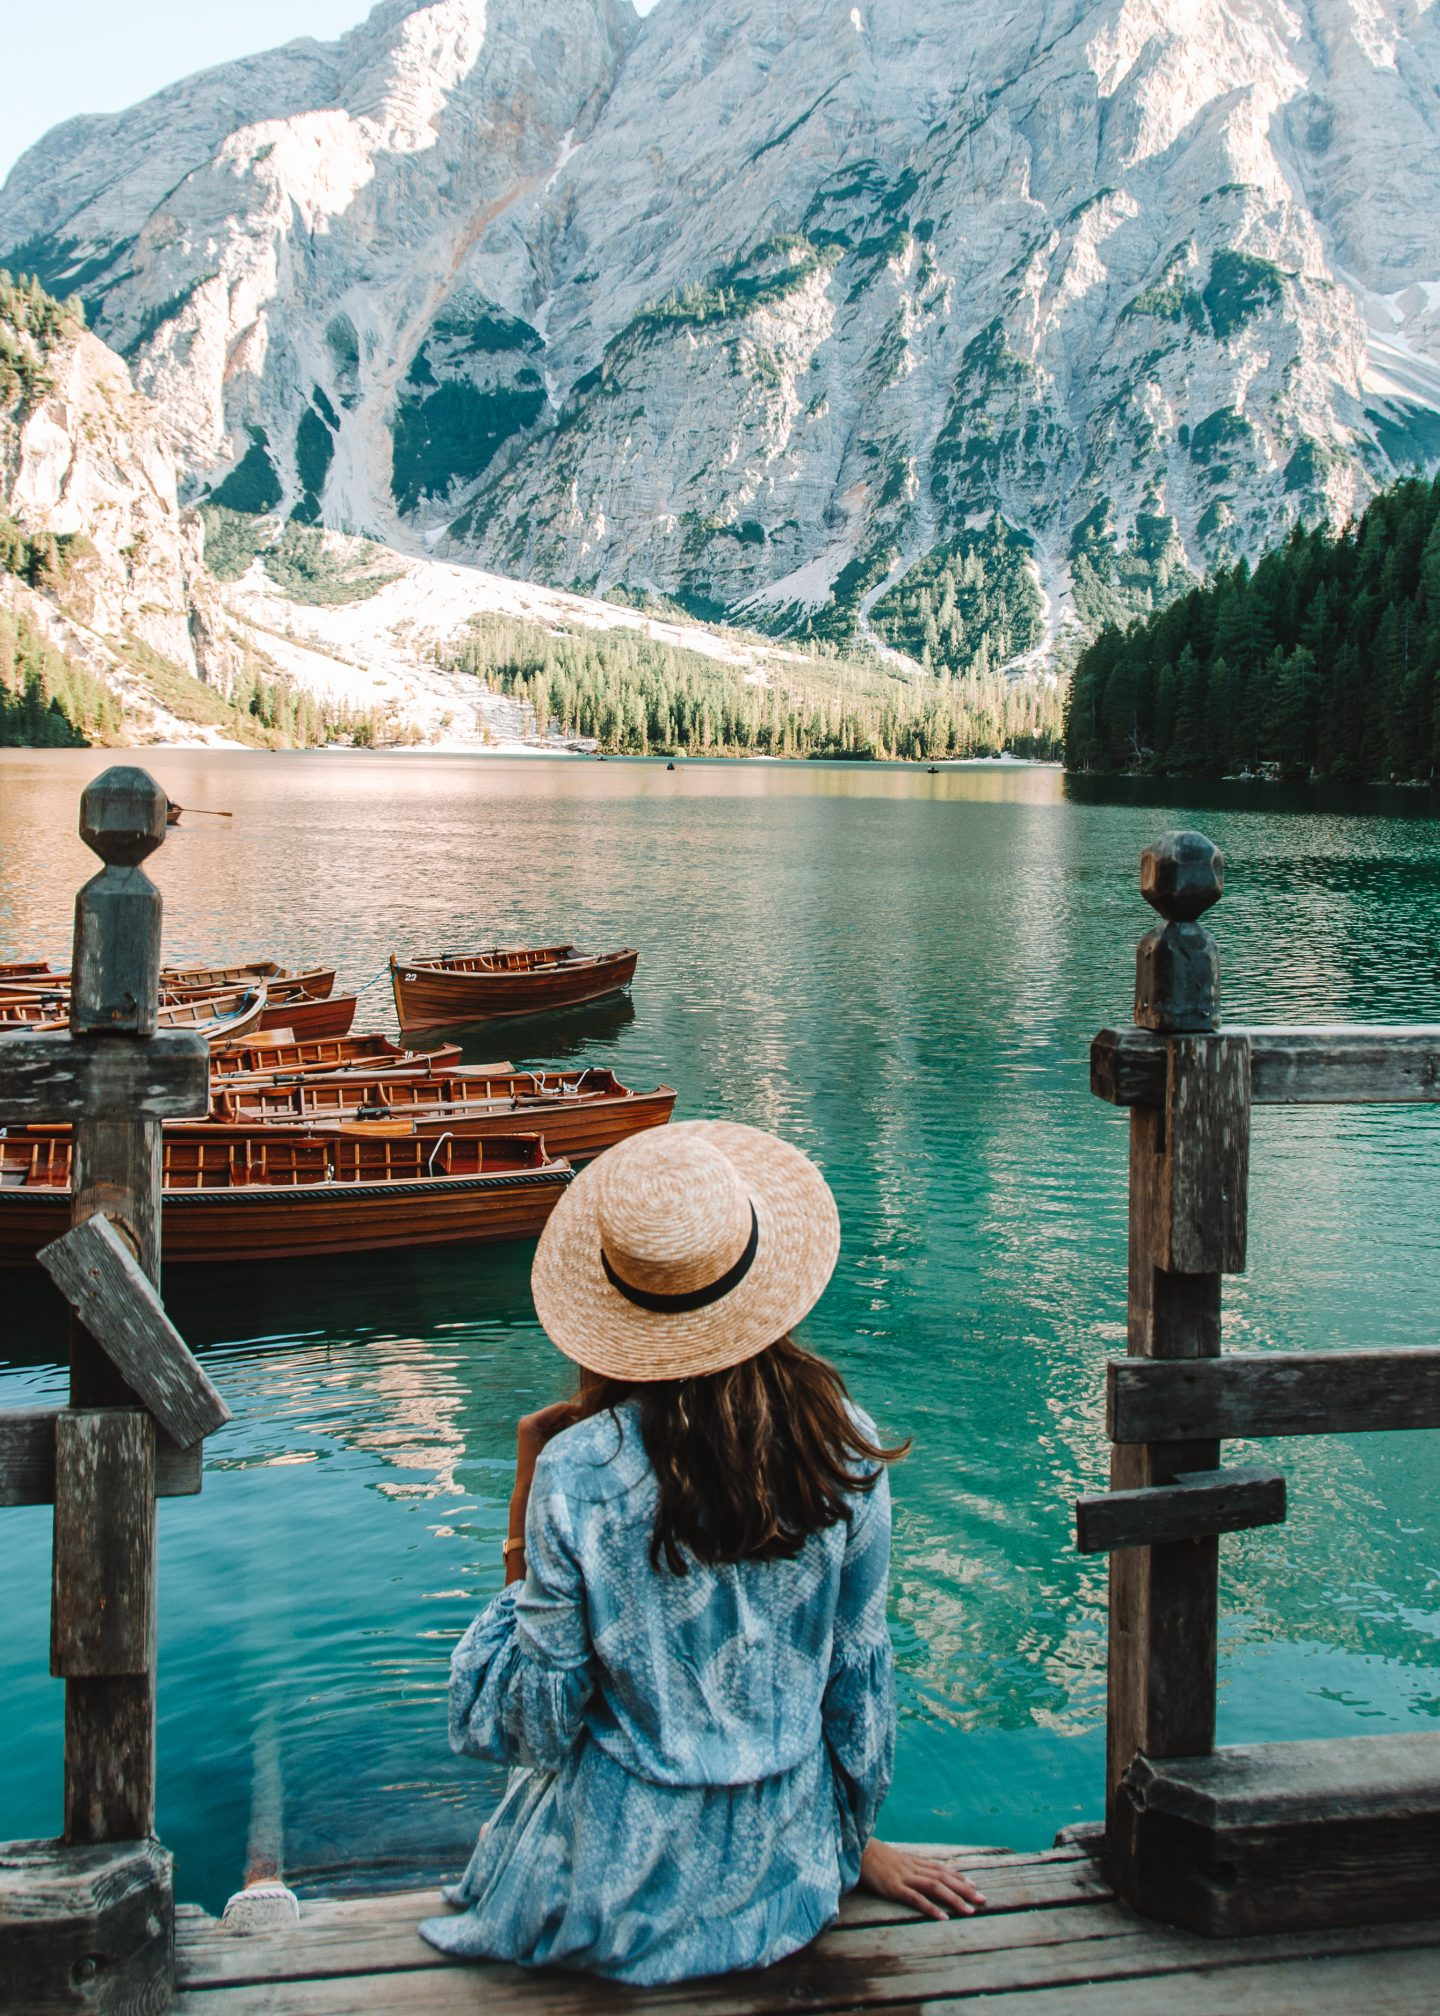 a girl in a blue dress sitting on the steps at lago di braies in the dolomites